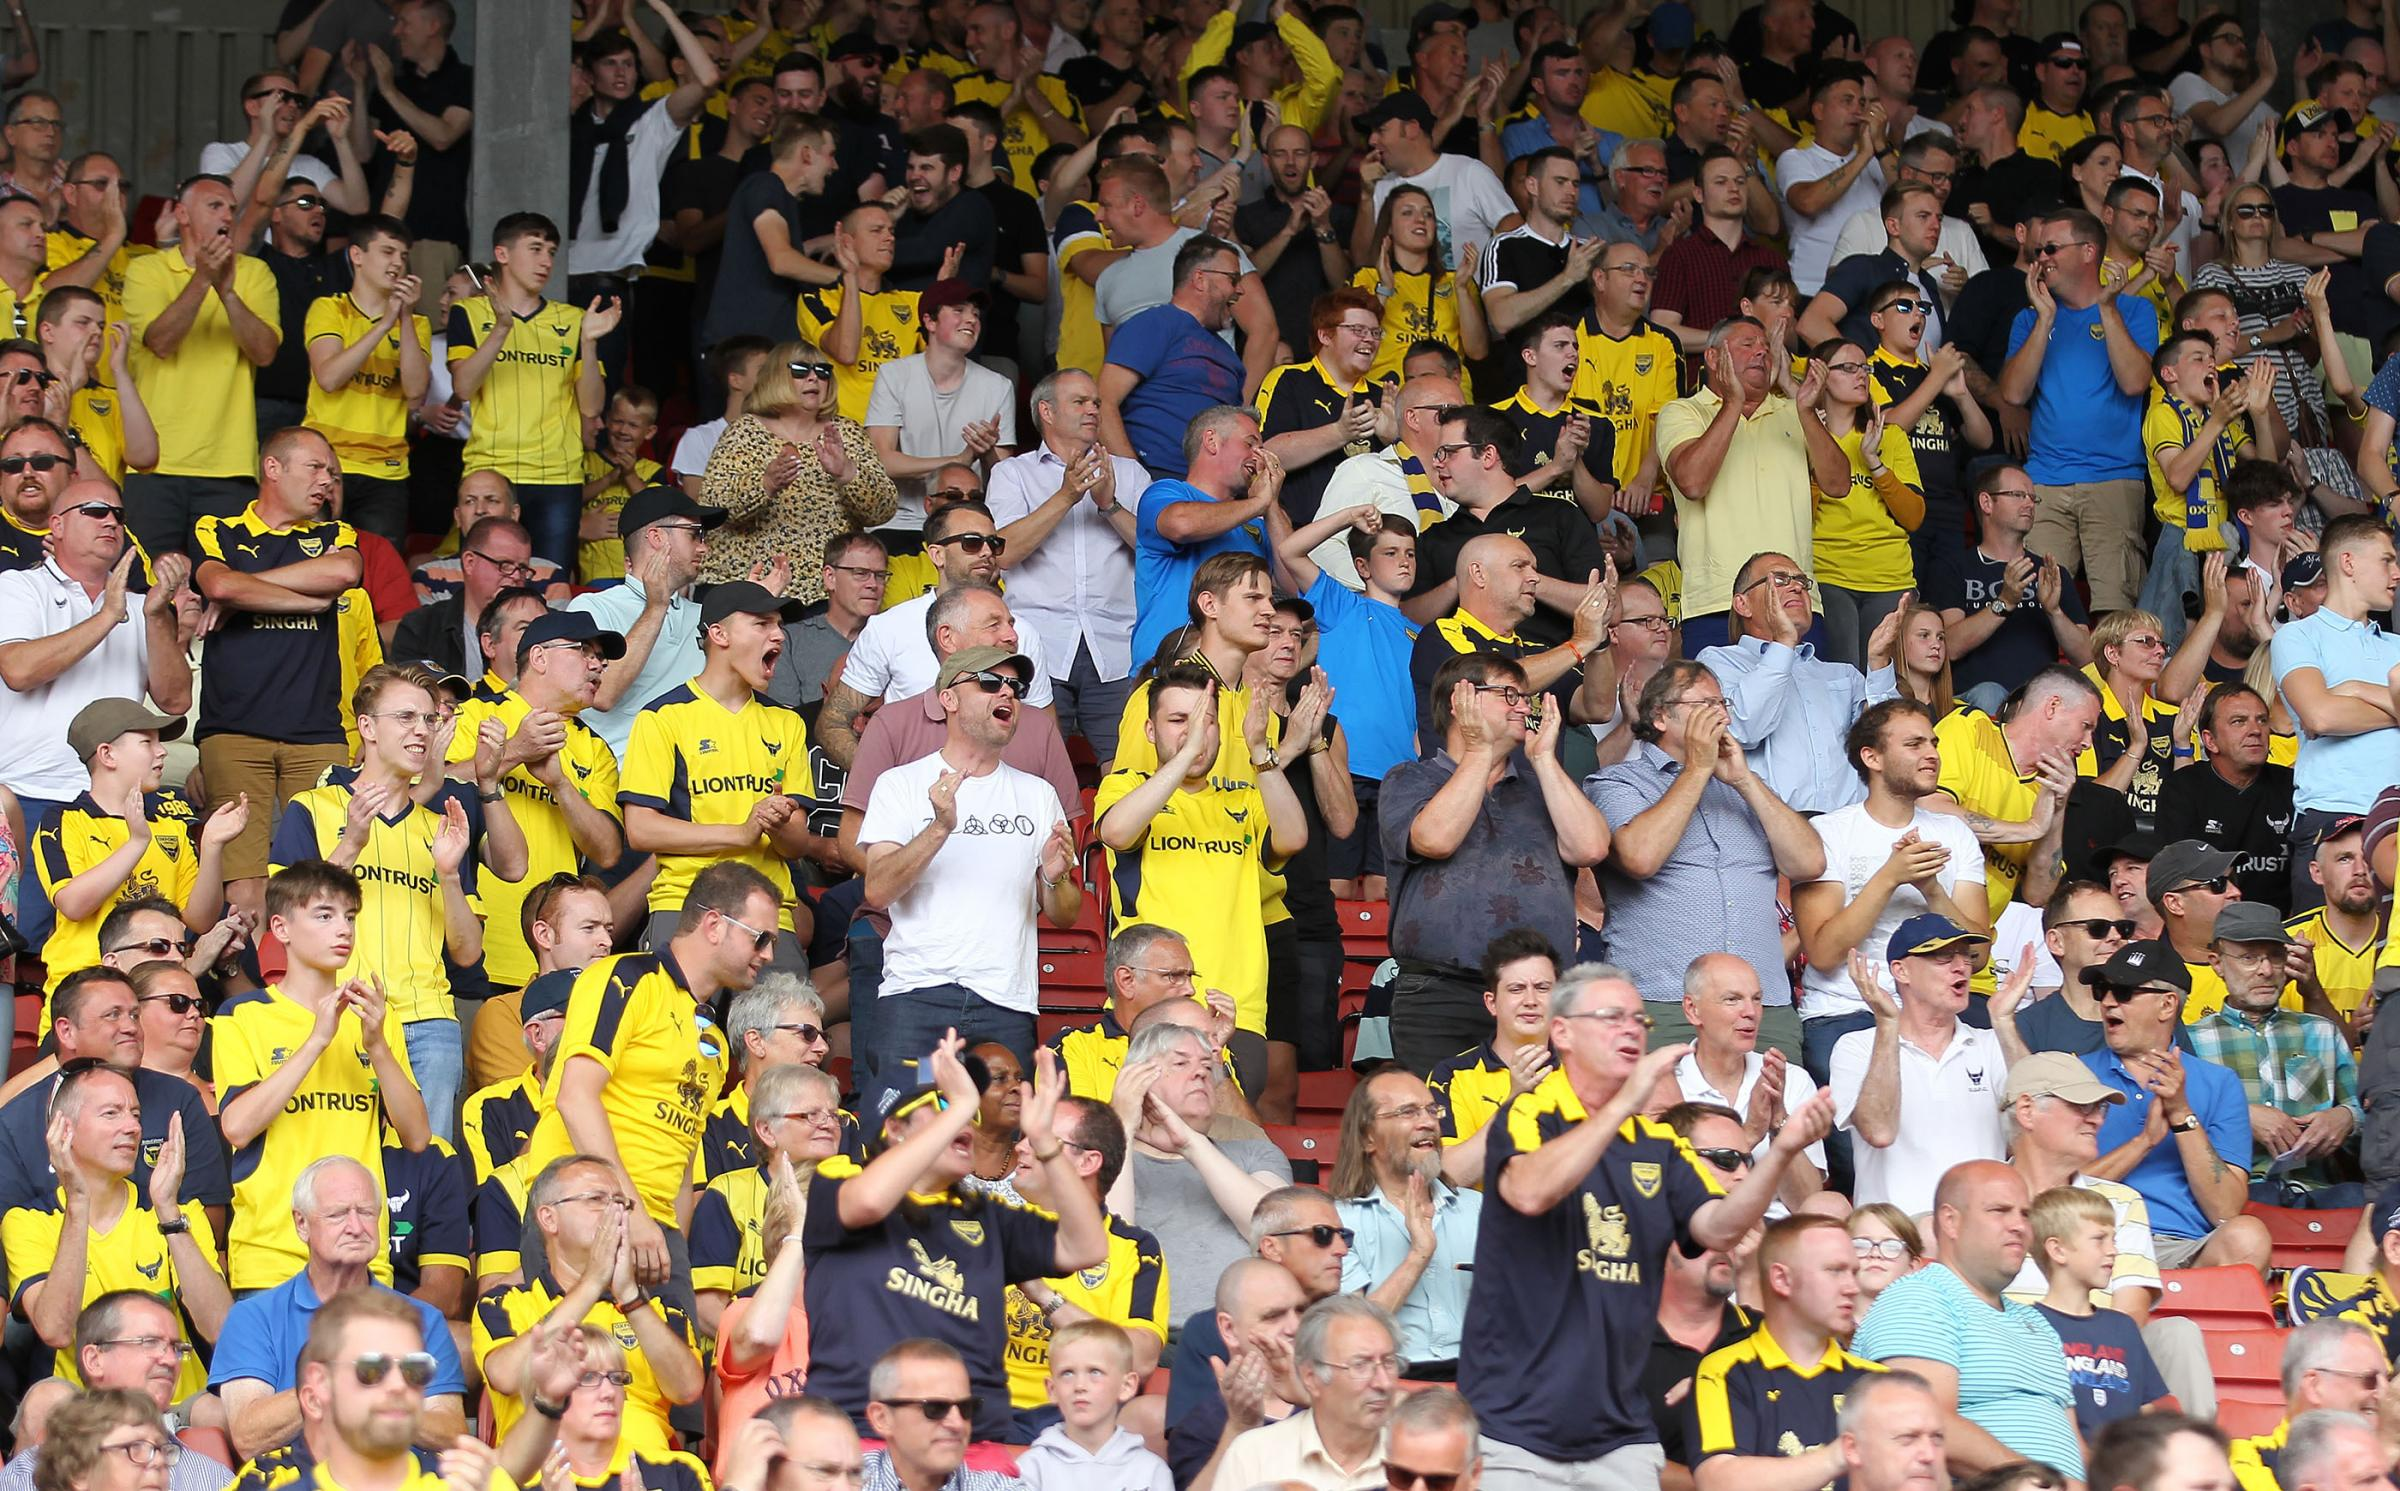 Oxford United fans, some of whom probably travelled by bus. Picture: Richard Parkes